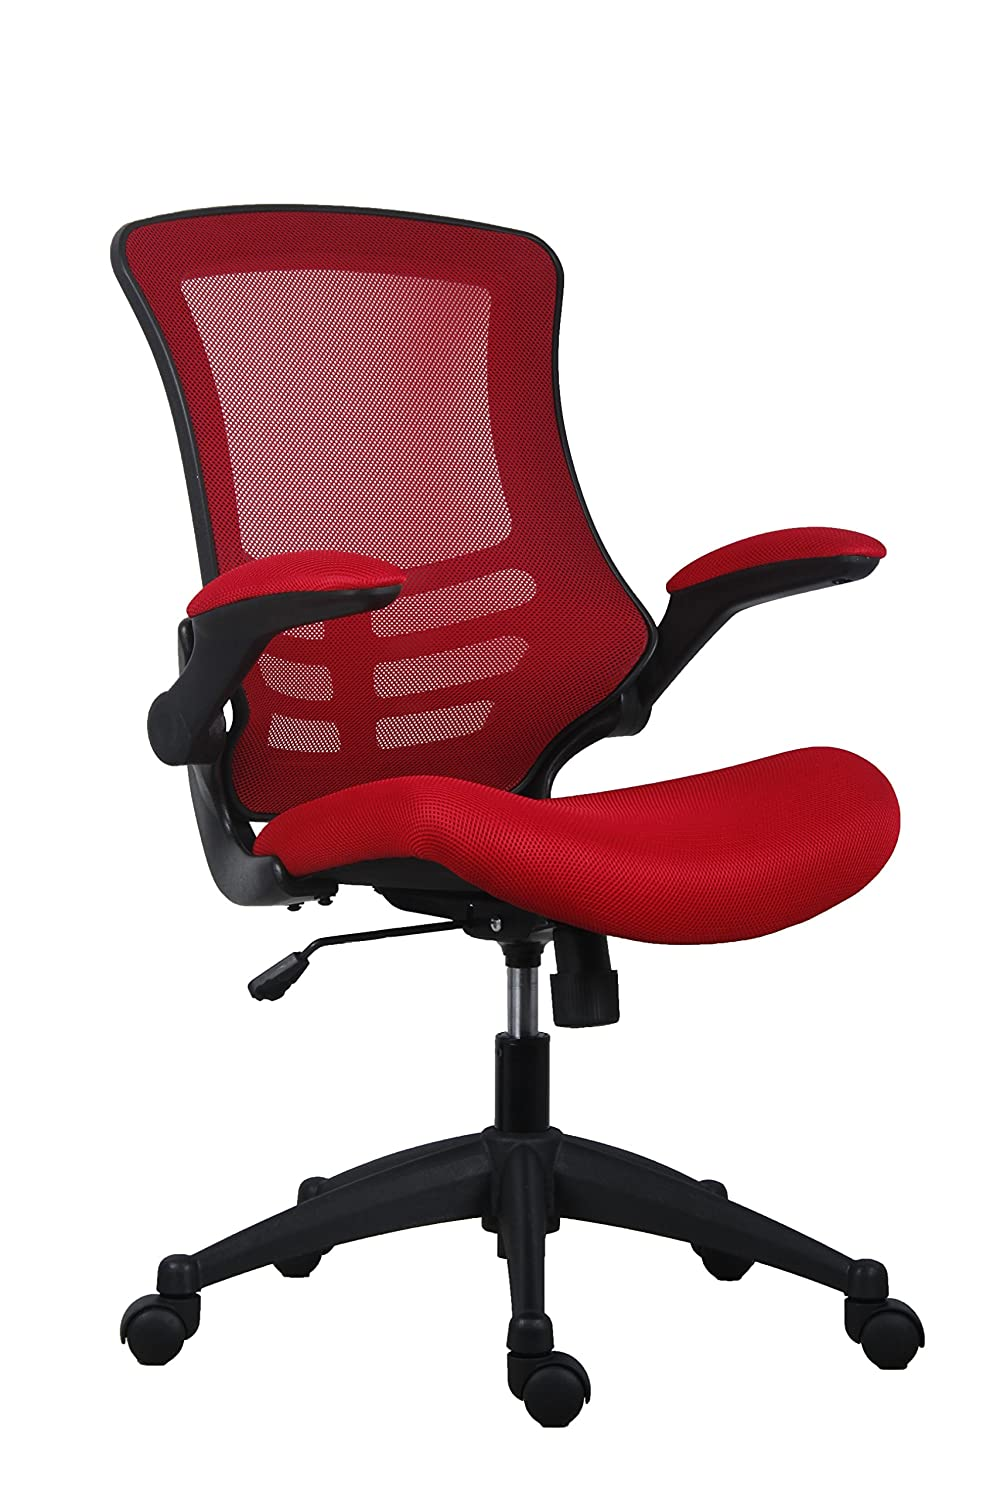 Office Hippo Barlow Mesh Chair with Folding Arms, Black, One Size OHS0790BK